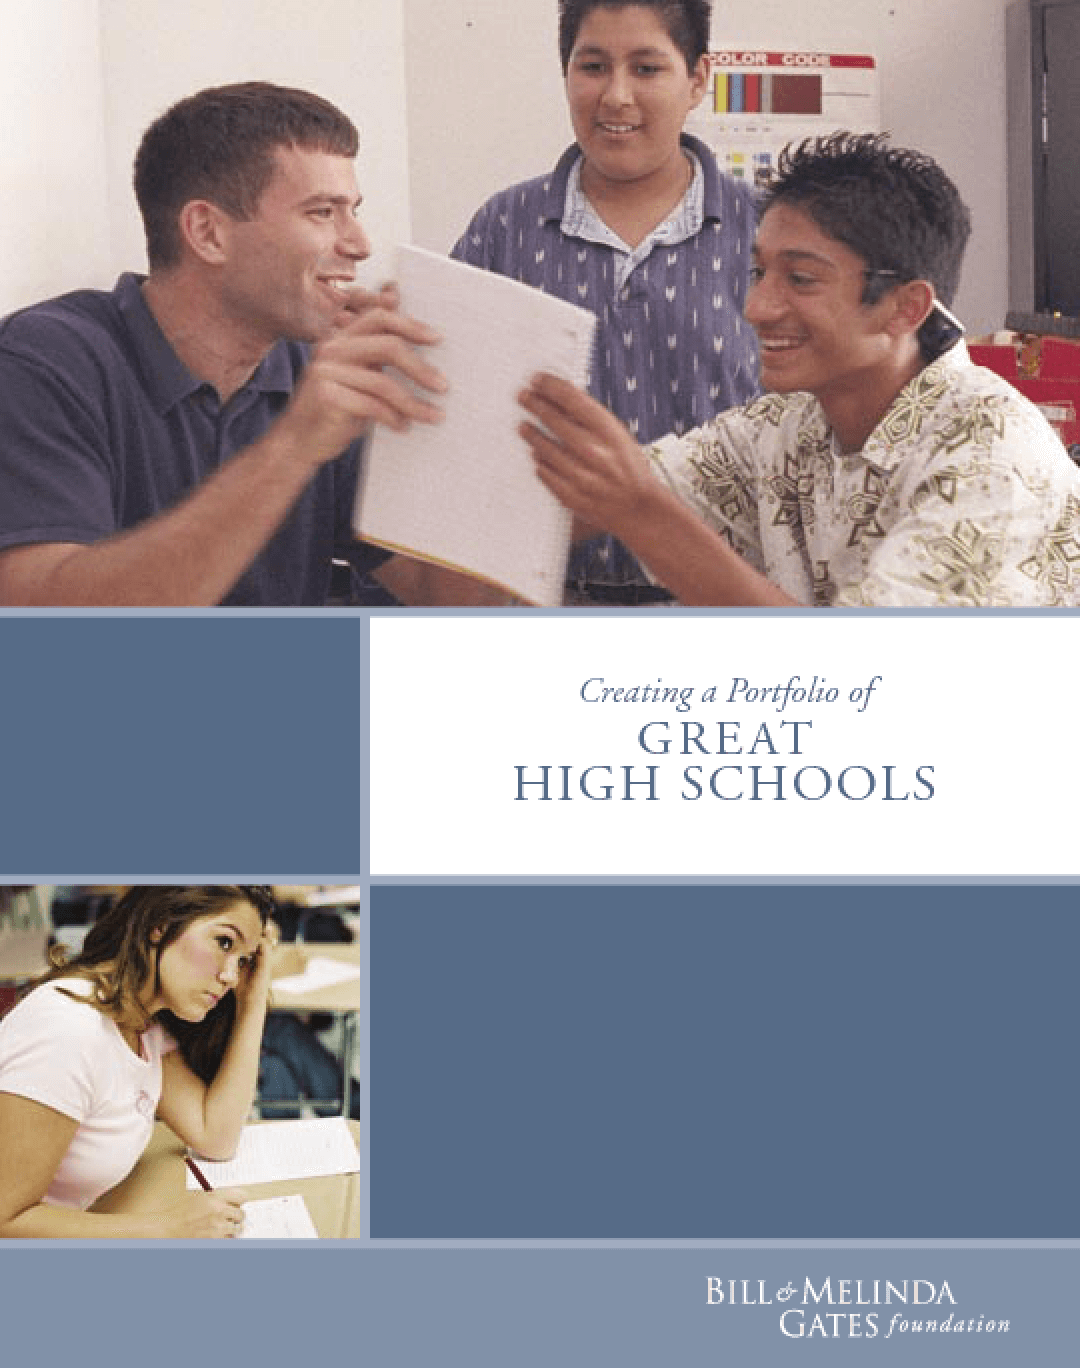 Creating a Portfolio of Great High Schools